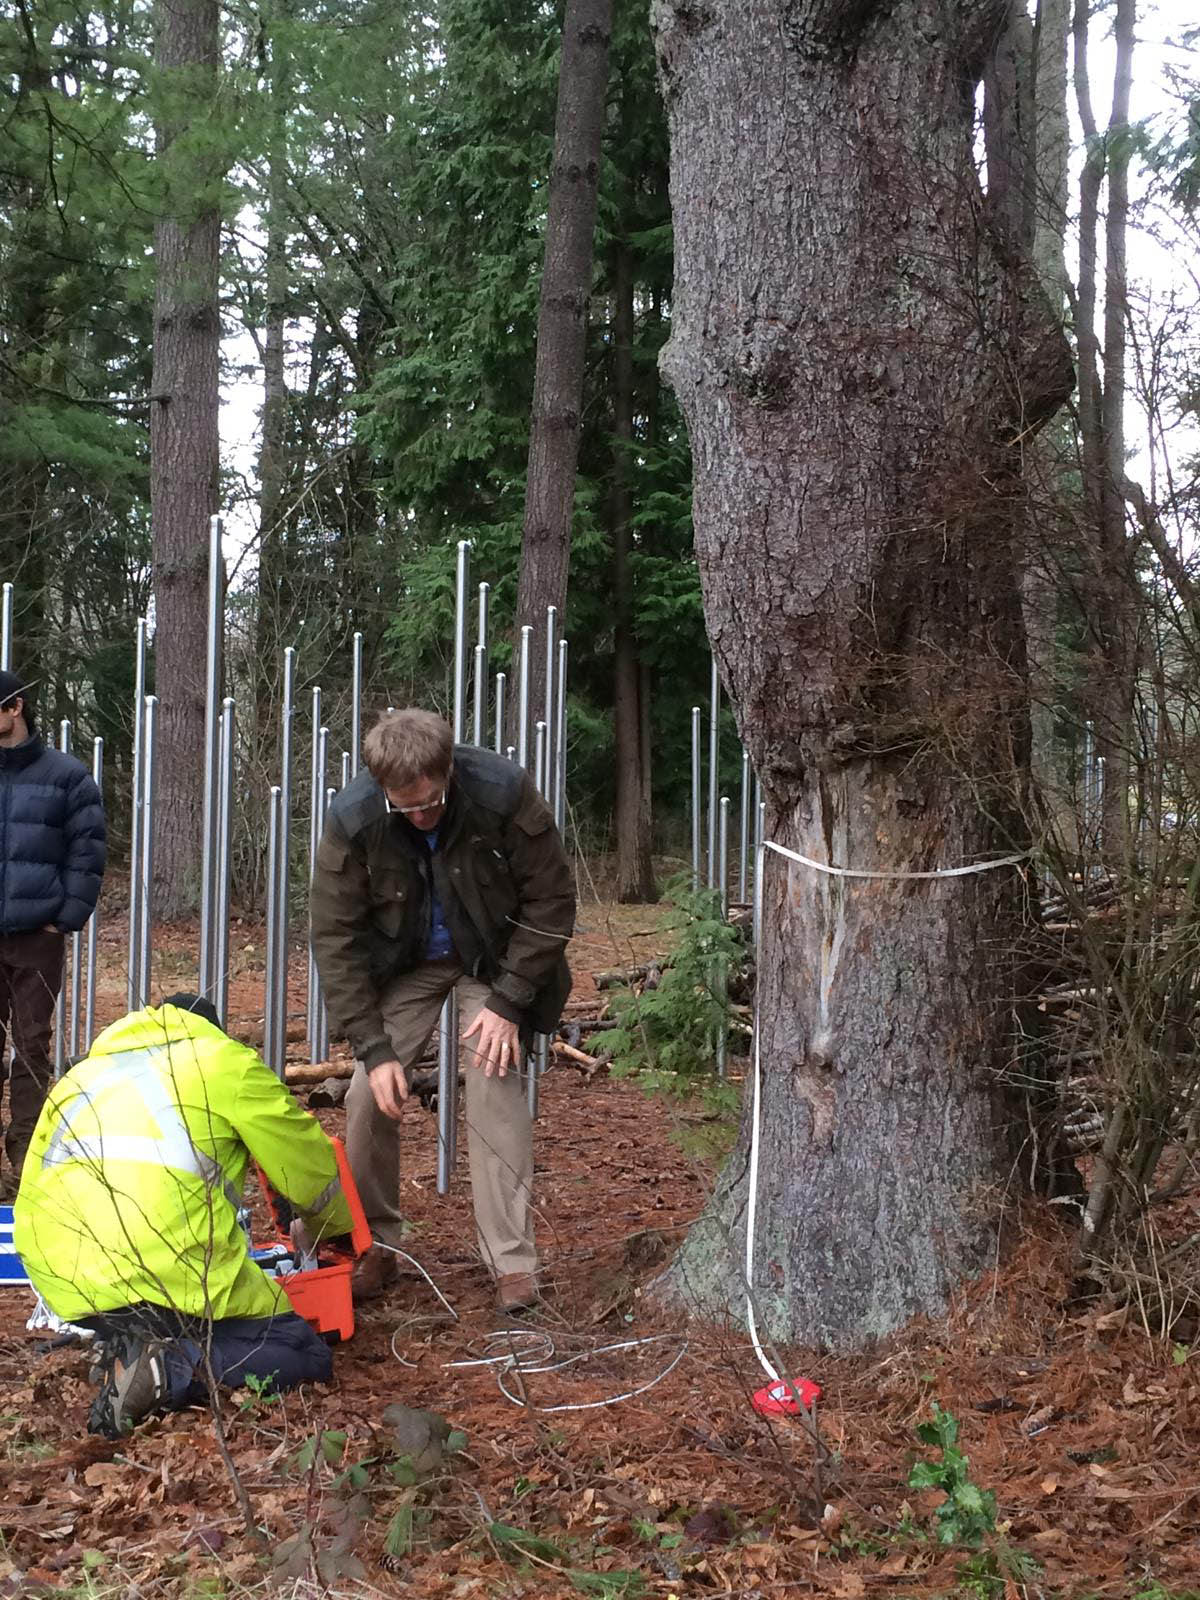 using tools to assess a trees health in Surrey